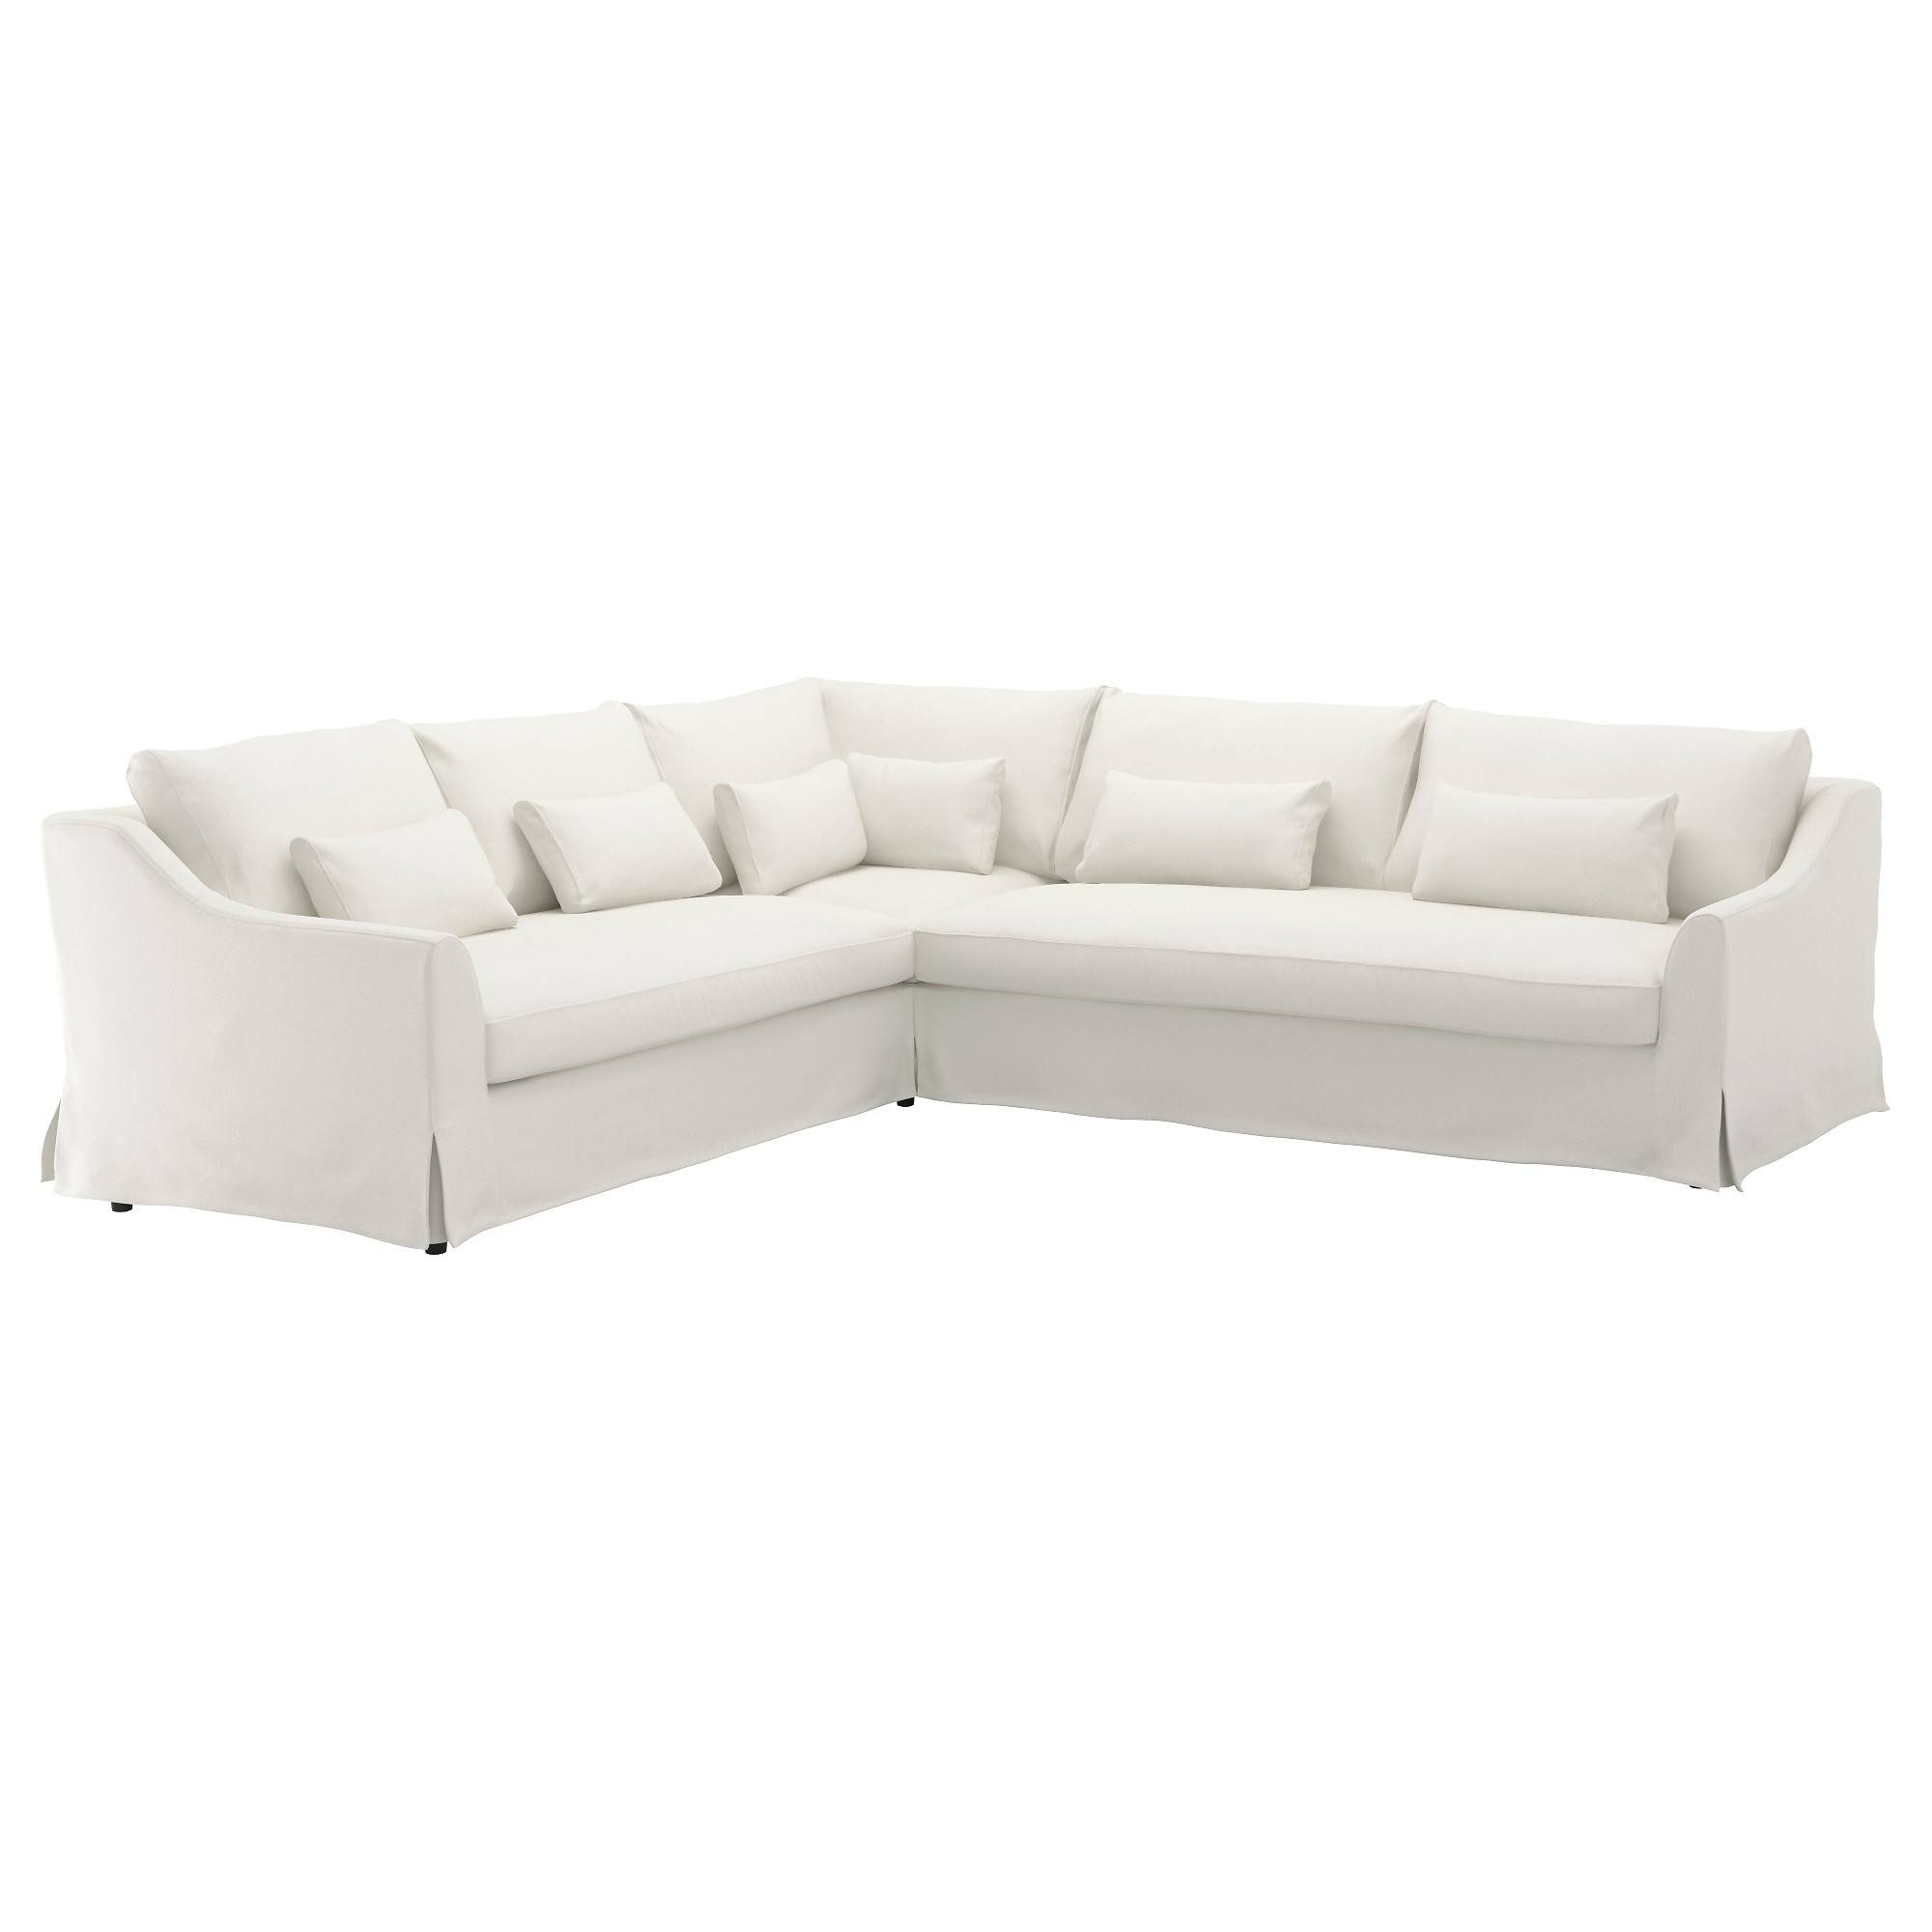 Fabric Sofas - Modern & Contemporary - Ikea within White Sofa Chairs (Image 10 of 30)